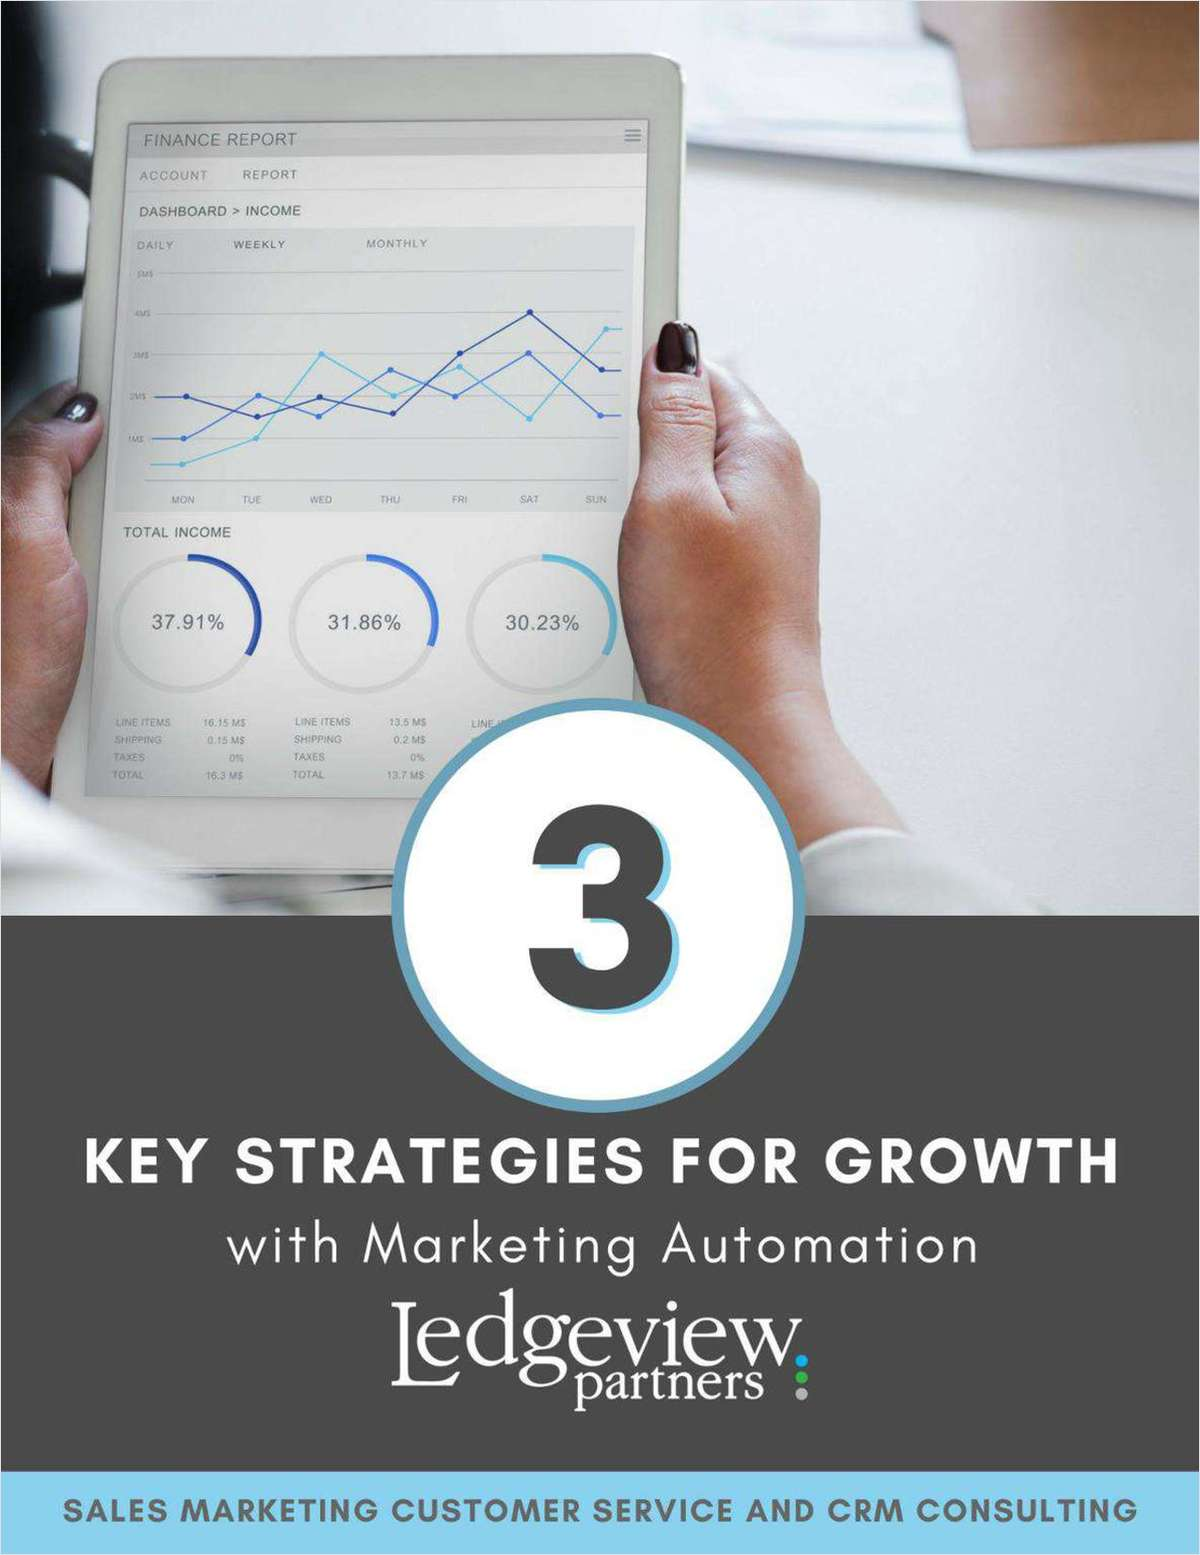 3 Key Strategies to Drive Growth with Marketing Automation